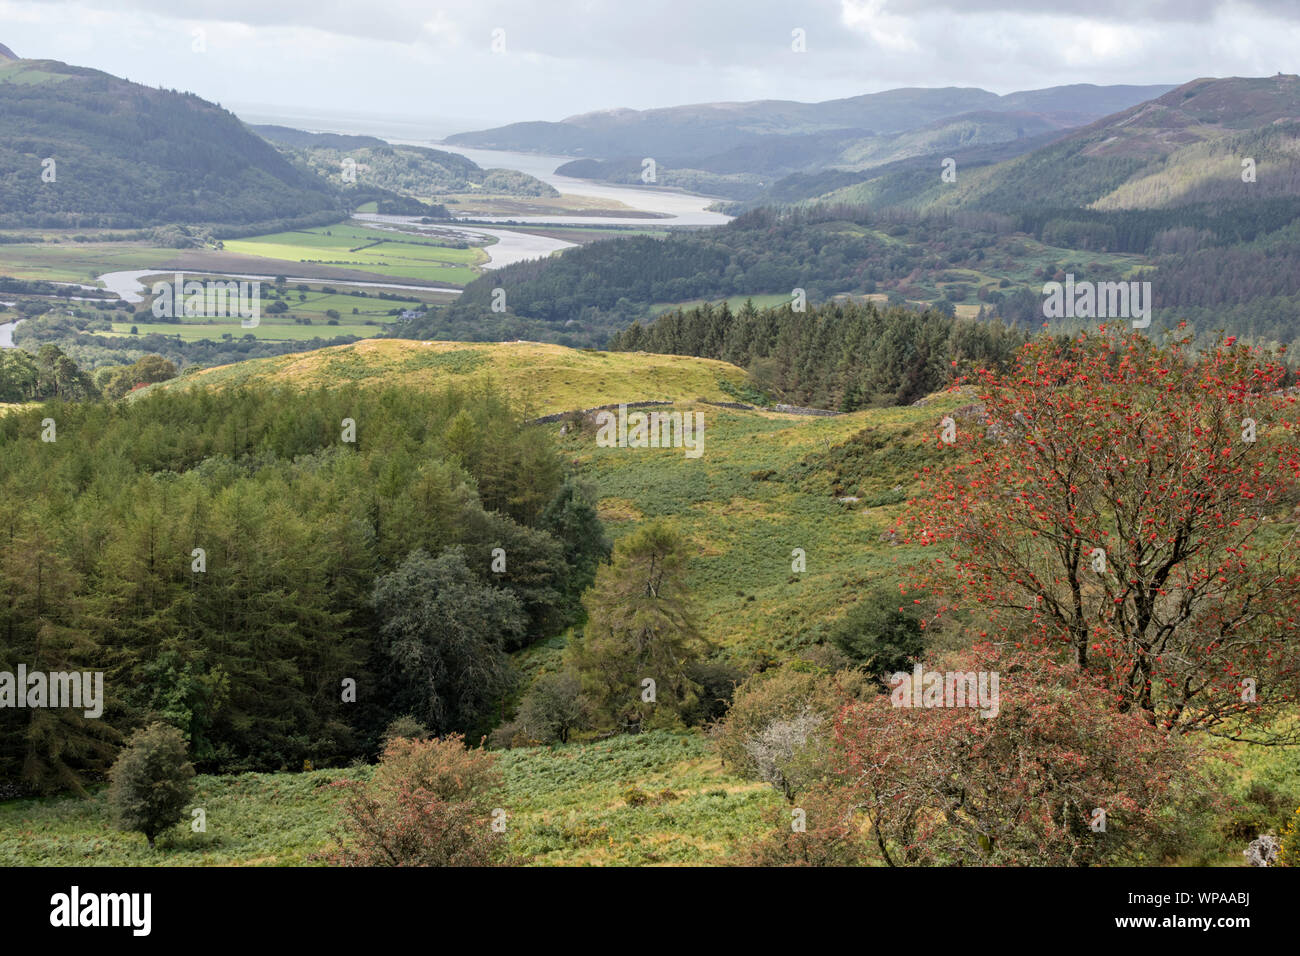 A view of the Mawddach Estuary from the Precipice Walk, Snowdonia National Park, North Wales, UK Stock Photo